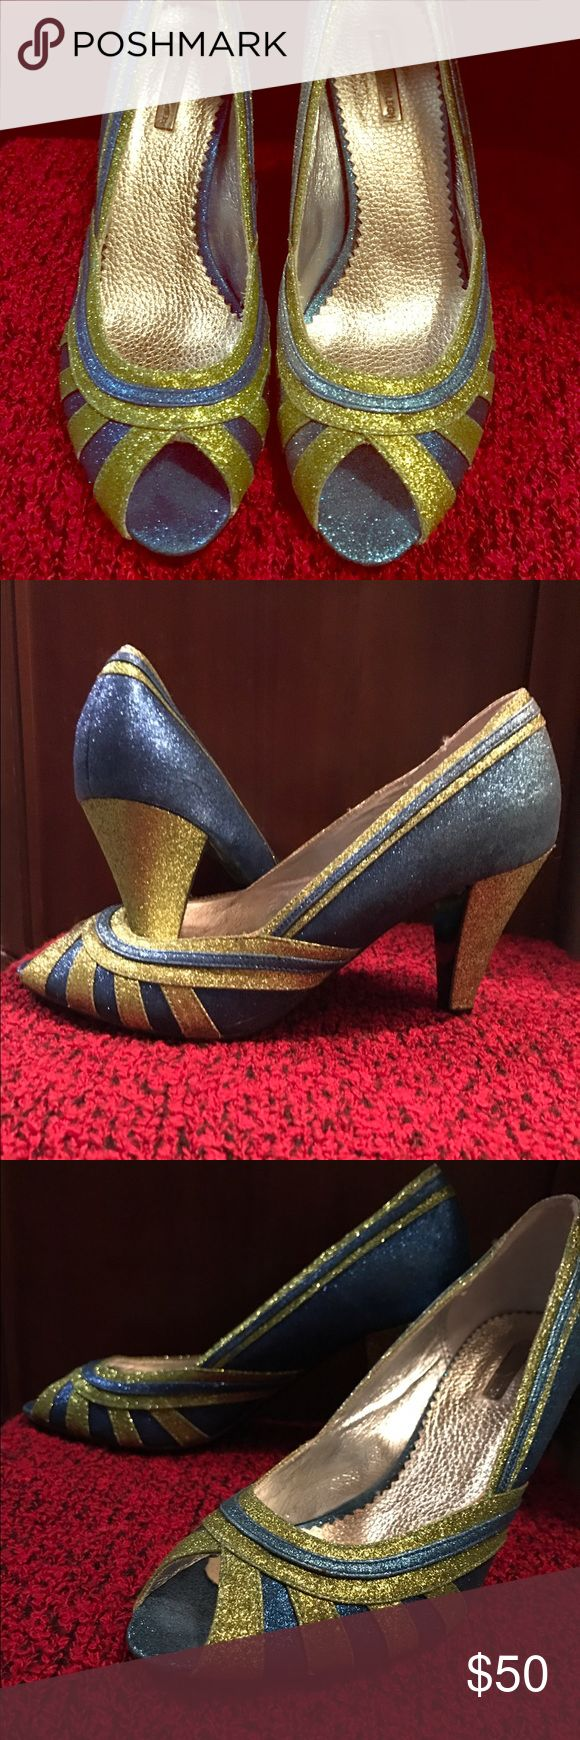 "WOW Fantastic Sparkling peep toe heels! You'll love the colorful combination and asymmetry in the coloring between the left and right shoe. The left shoe front and outer side have a royal blue and gold glittered sunburst type design. Inner portion of shoe is similarly designed but with silver and gold. The blue becomes silver in an ombré effect. The right shoe is blue and gold. Inside right shoe arch area outer side has 1"" tear. Some glitter thinning noted in a few spots but only obvious…"